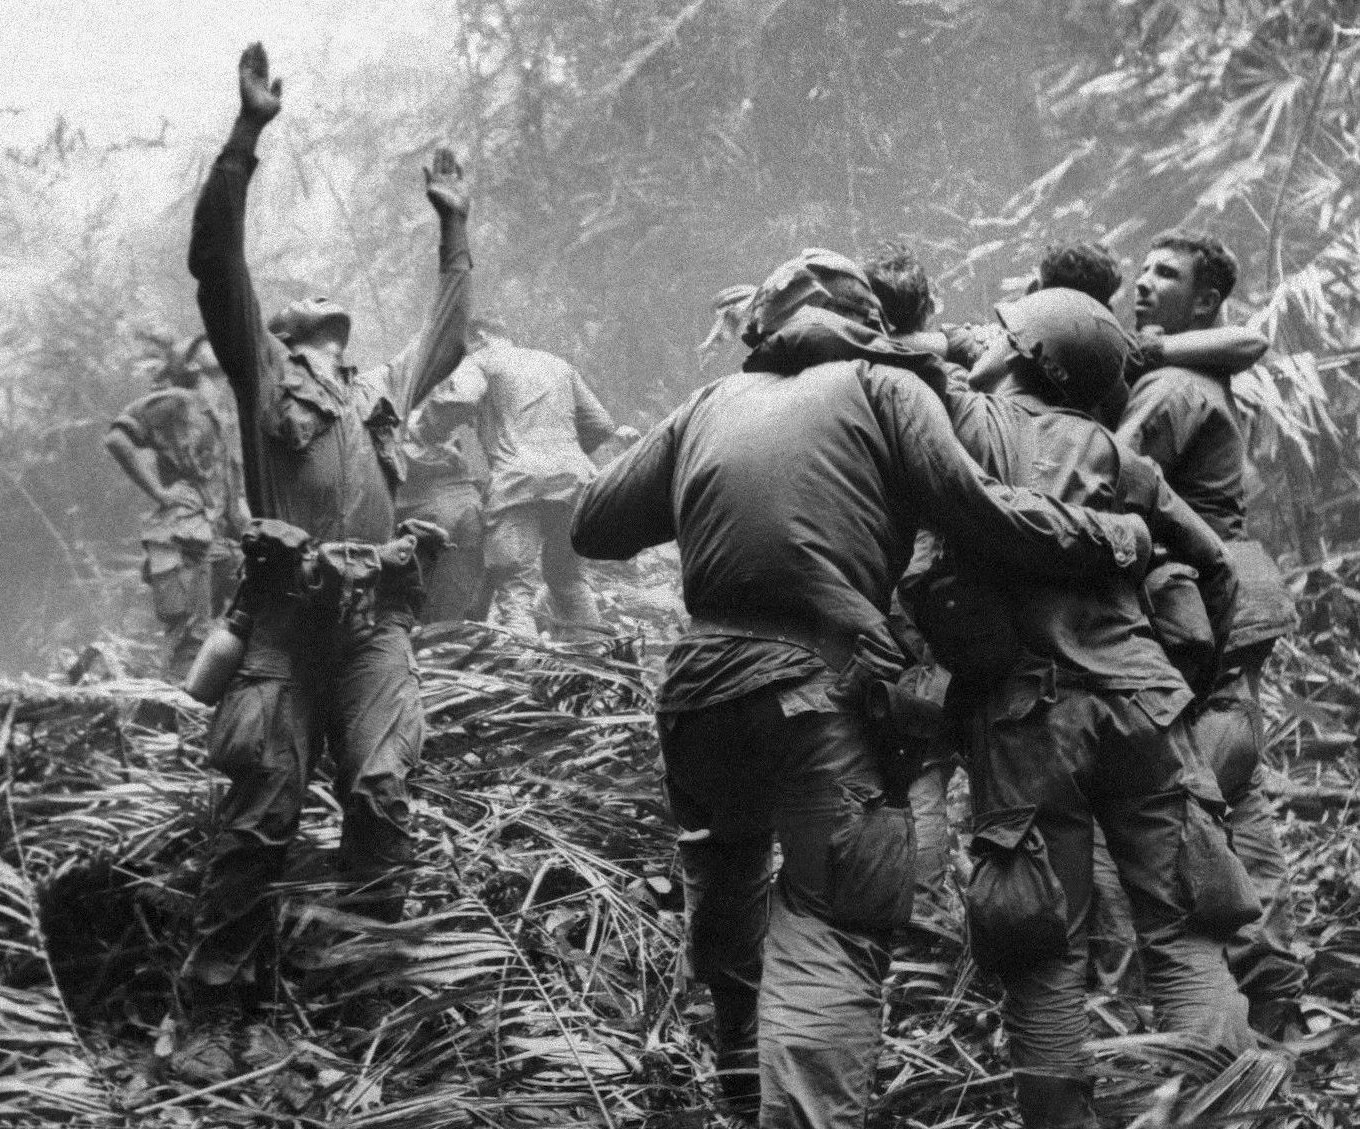 vietnam war iconic ph evan e1595408332548 1 e1606733440289 30 Things You Probably Didn't Know About Platoon